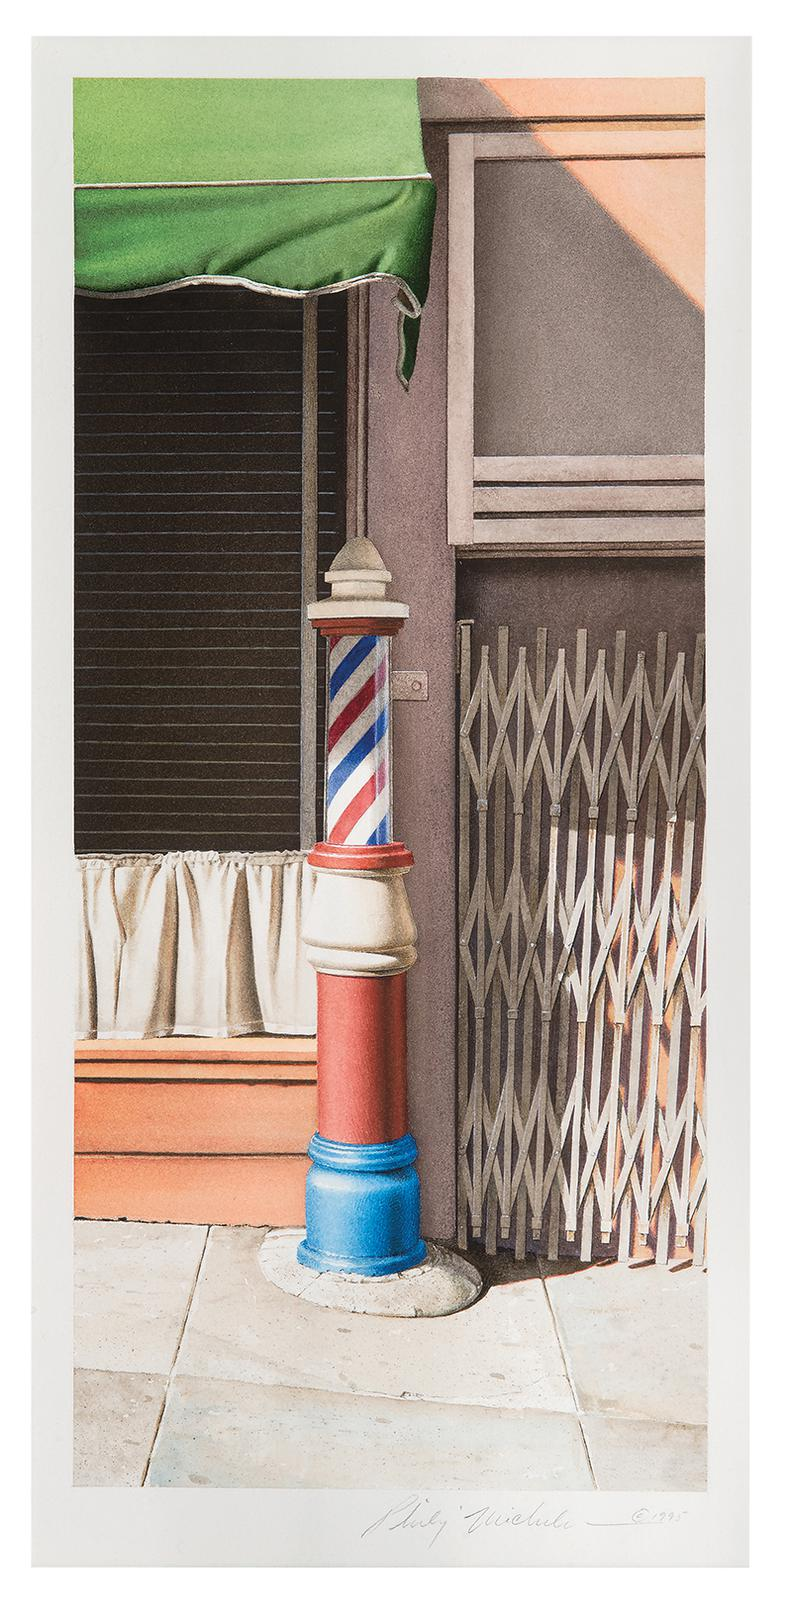 Philip Michelson - Untitled (Barber Pole)-1995